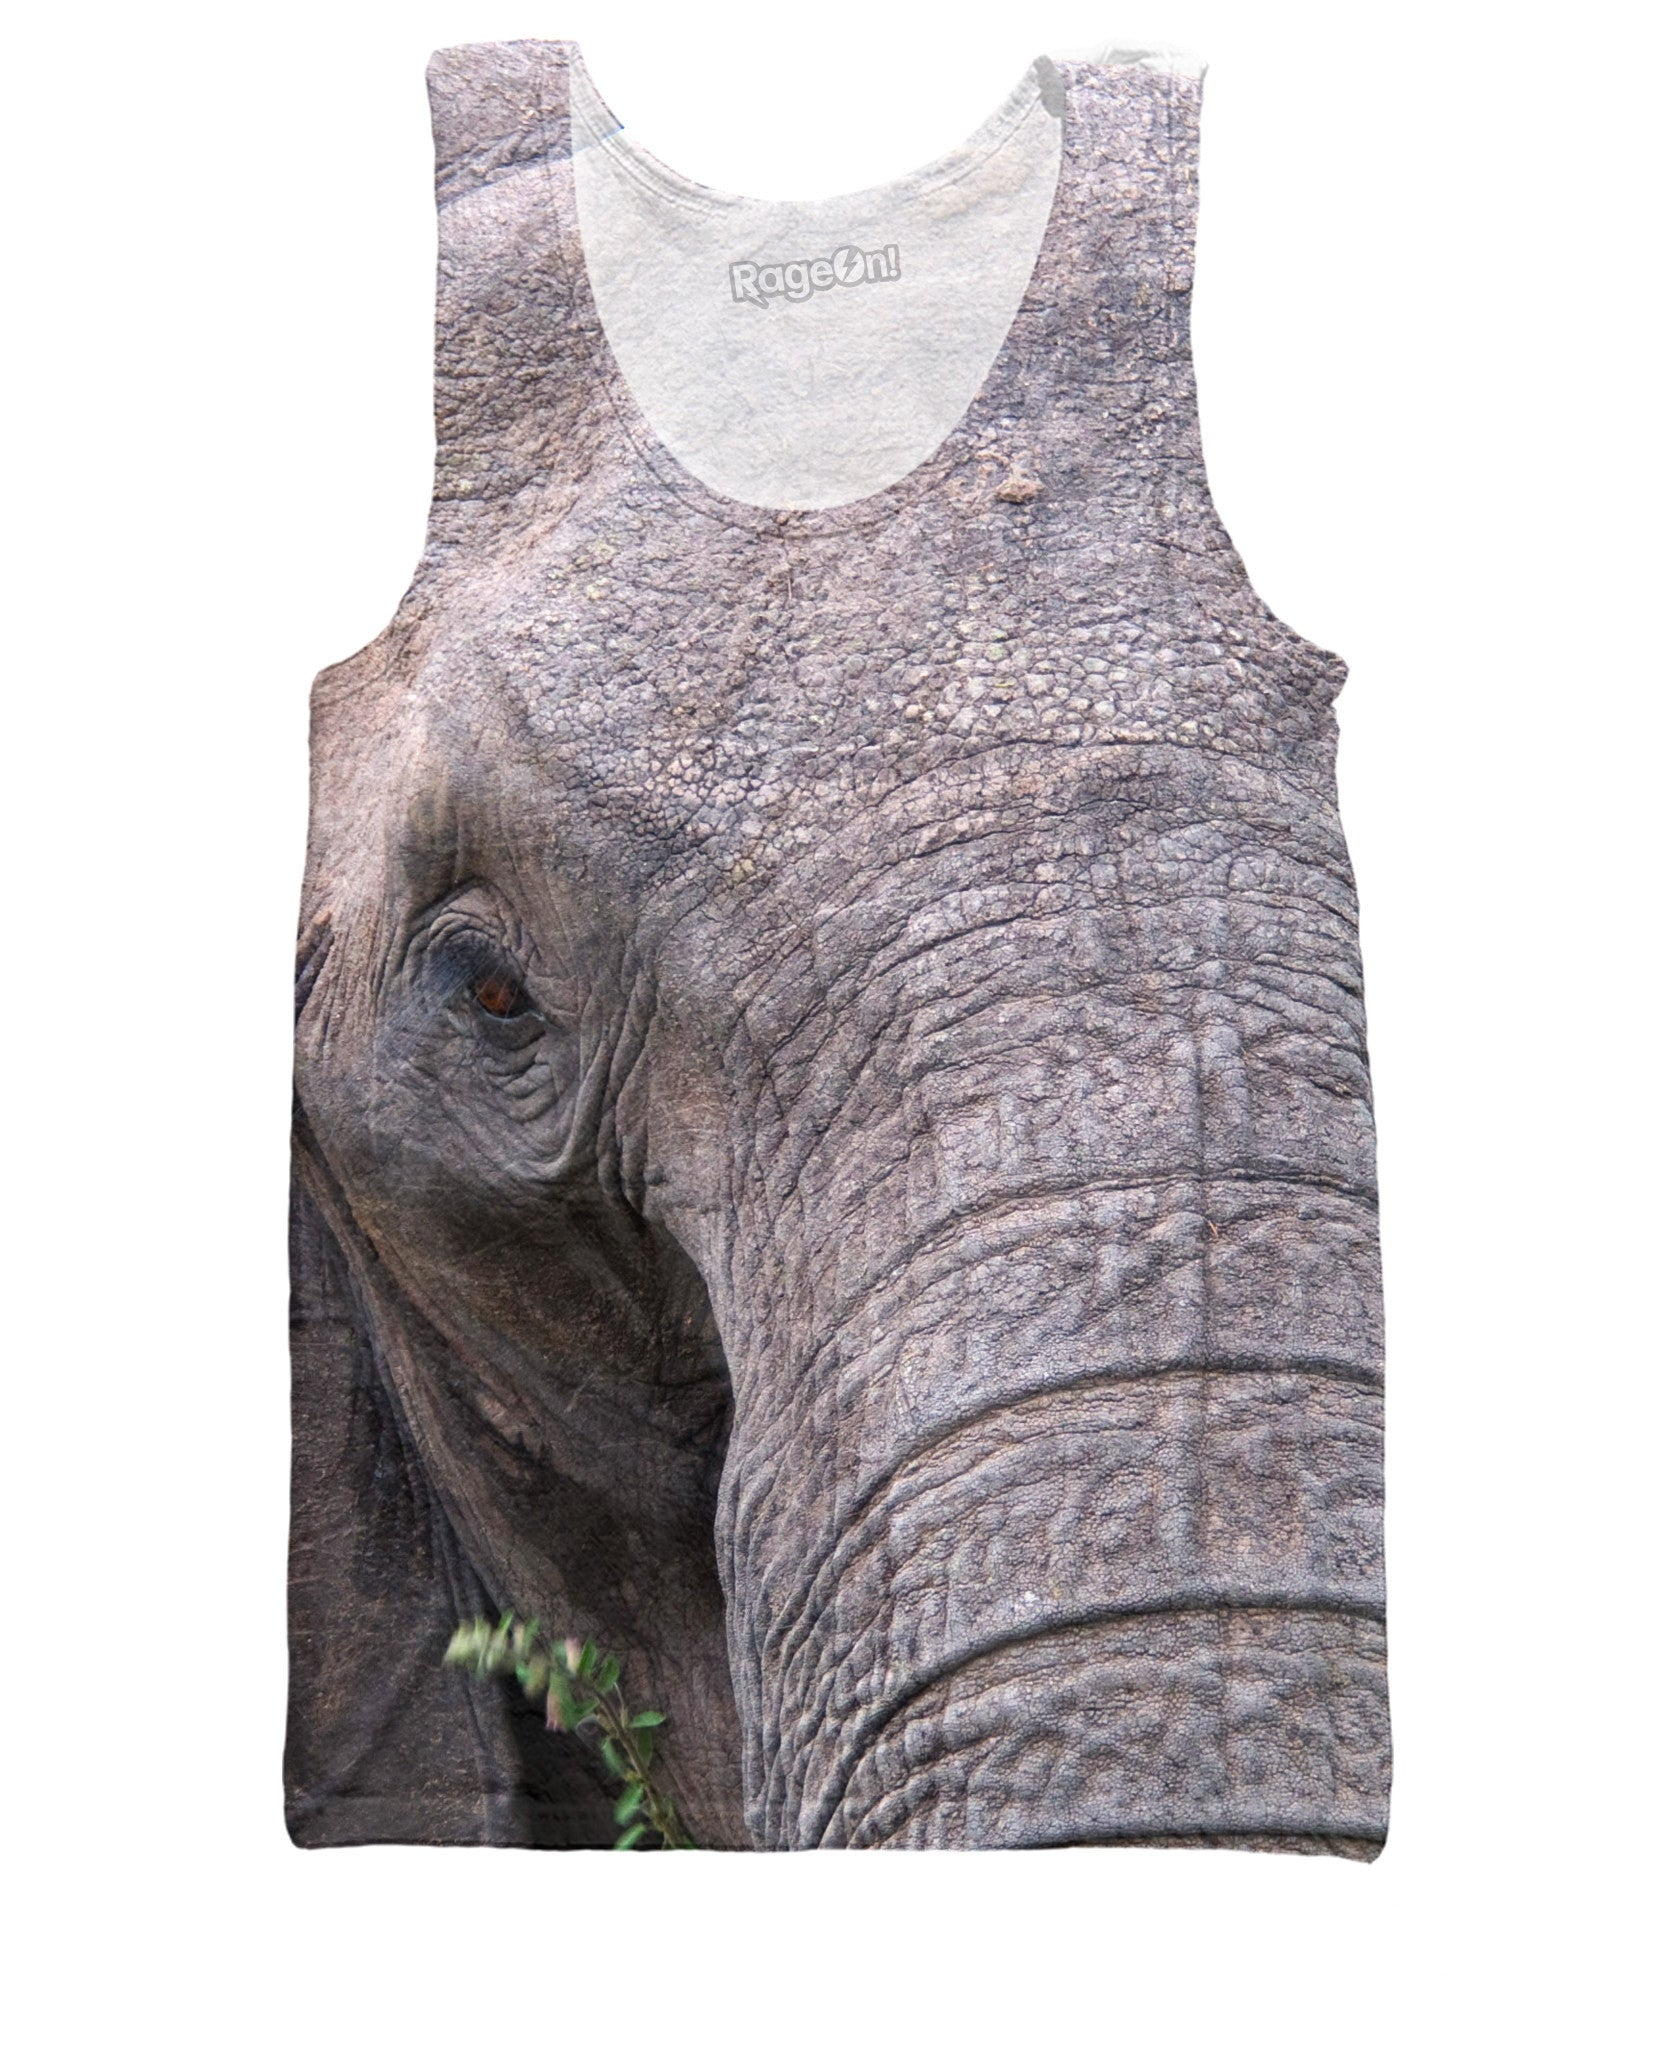 Elephant Tank Top - TShirtsRUS.co